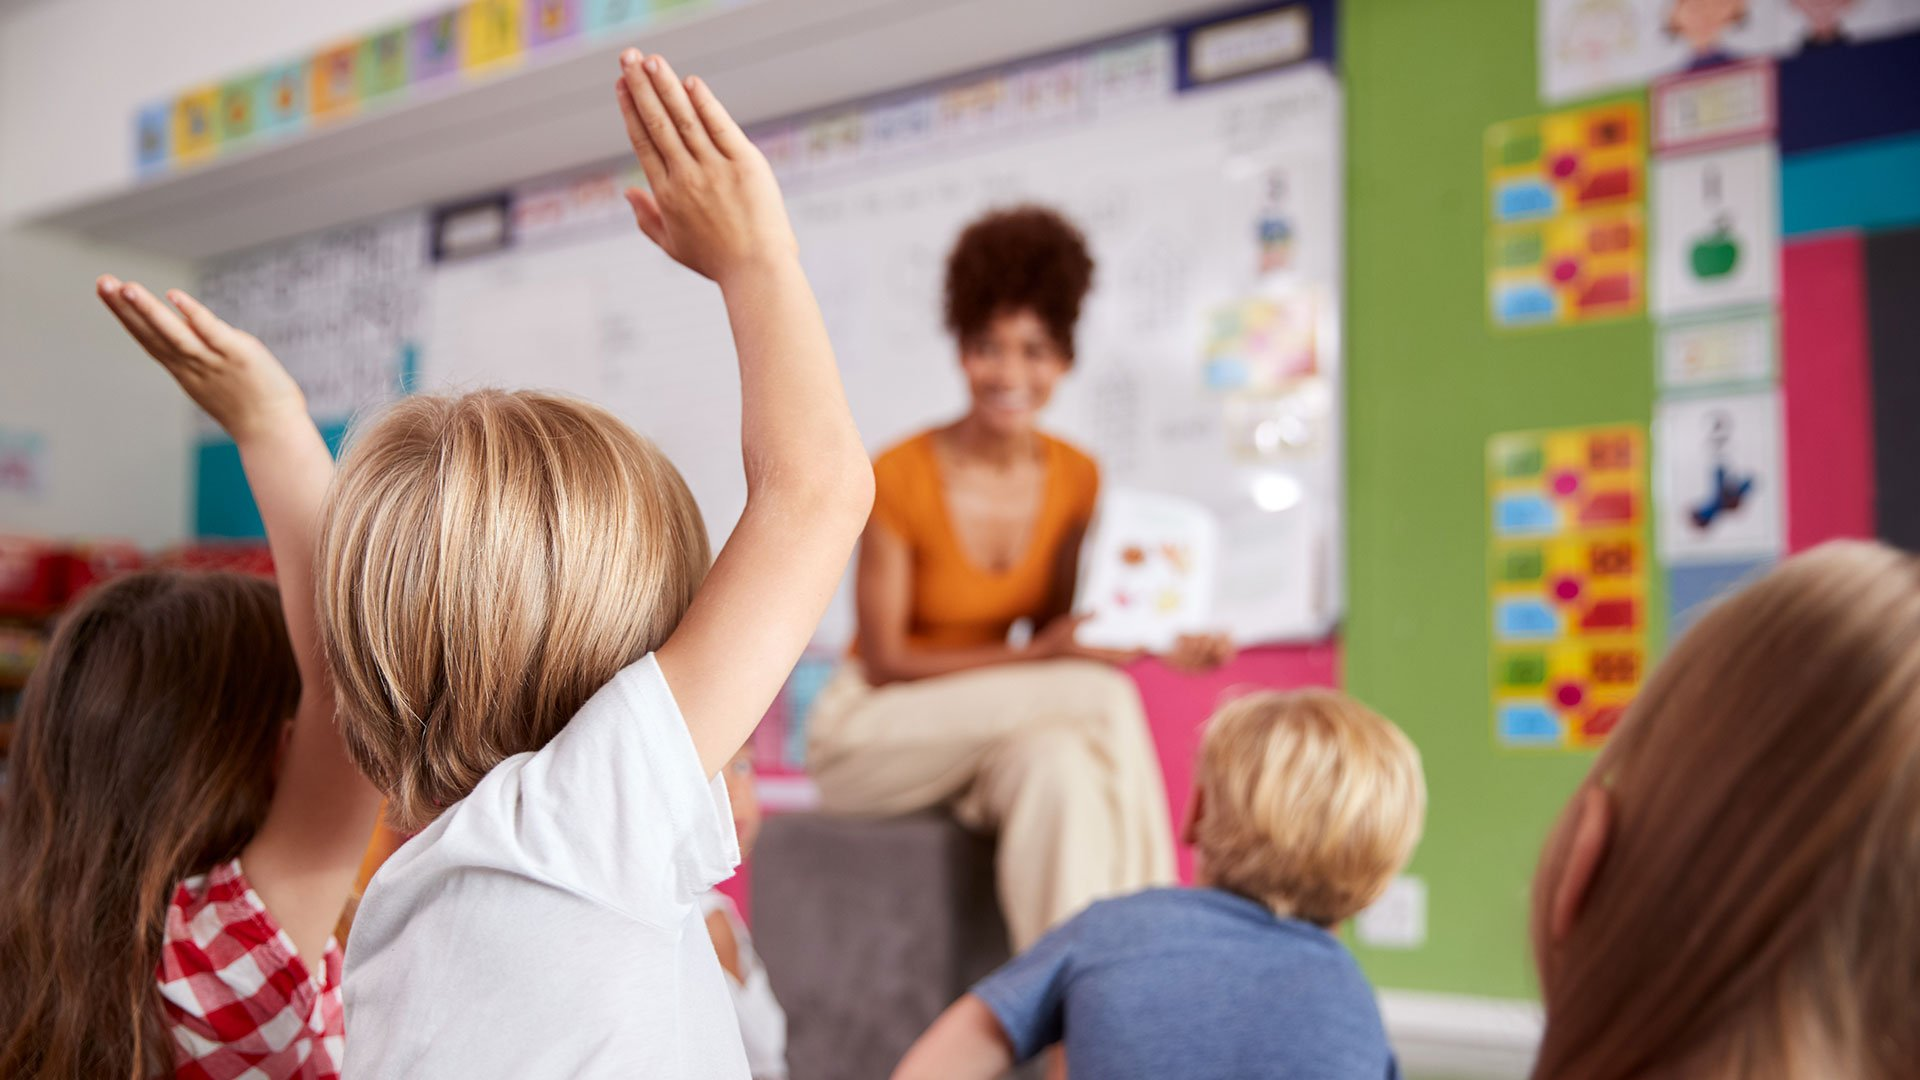 Teacher asking a question about analytics and children raising their hand to answer it.